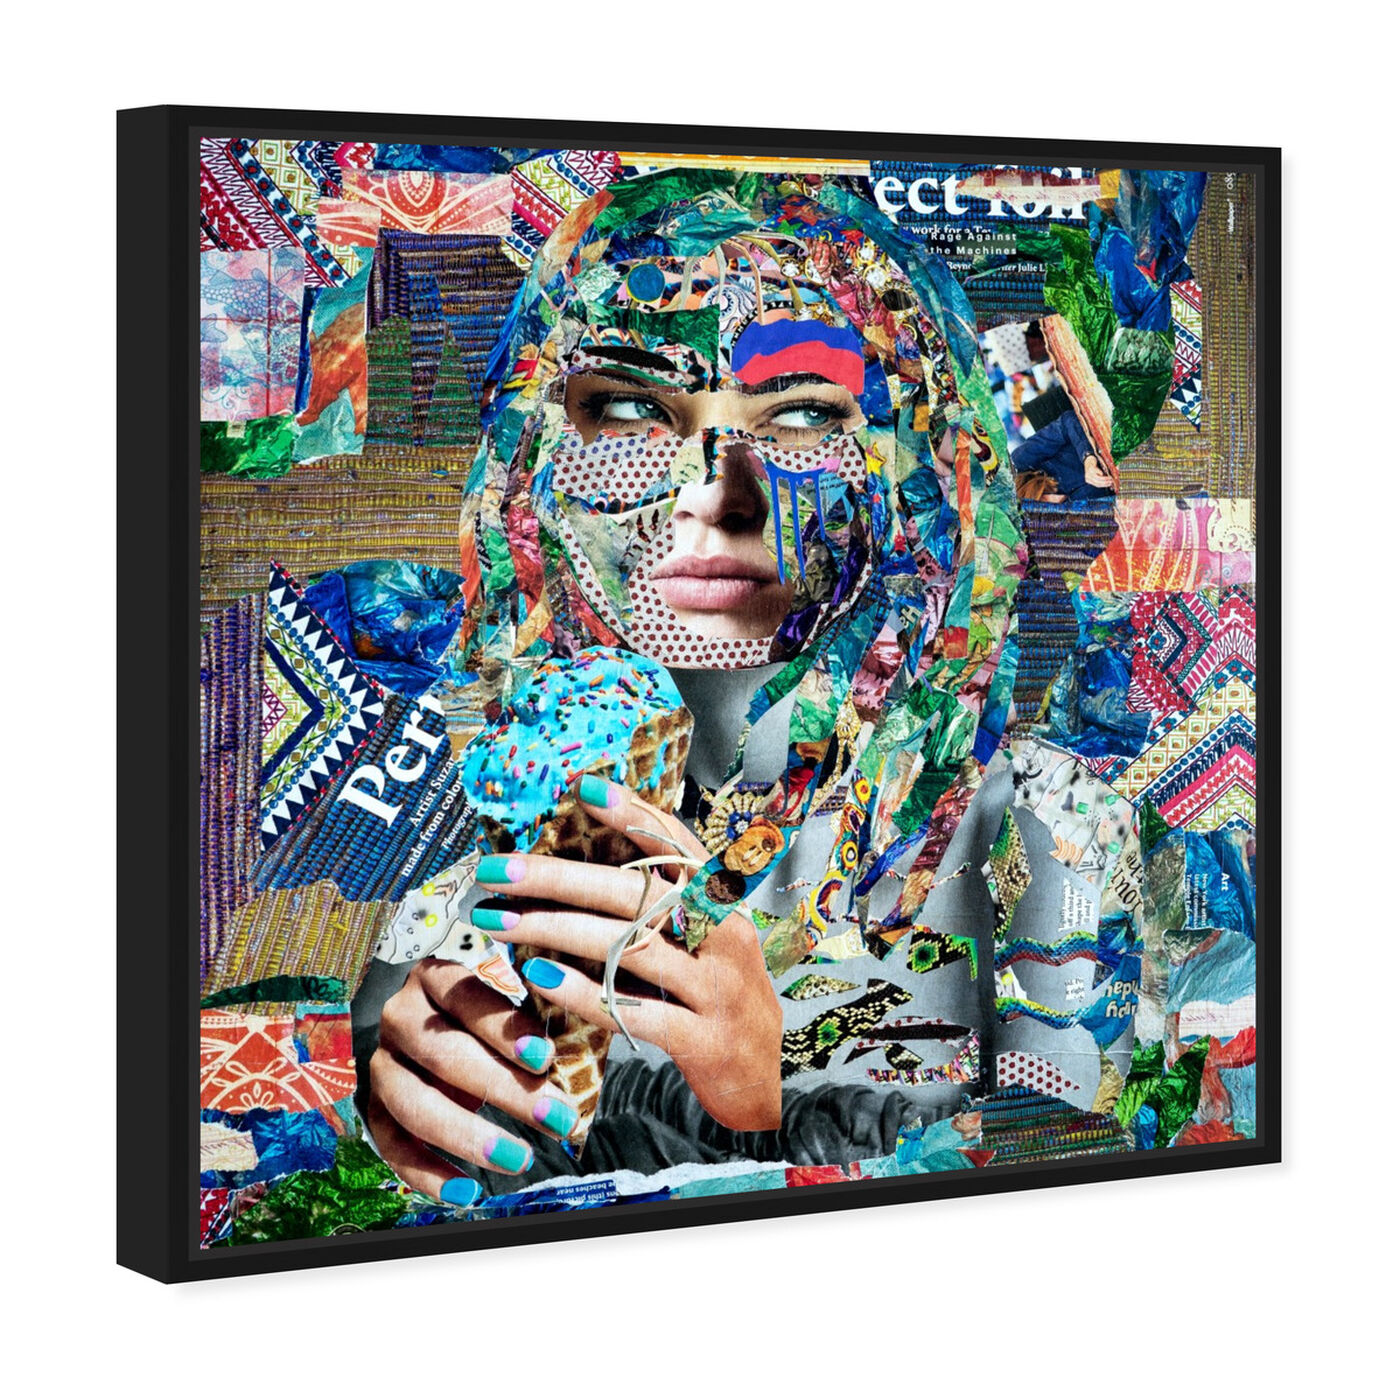 Angled view of BlueRaspberry by Katy Hirschfeld featuring fashion and glam and portraits art.